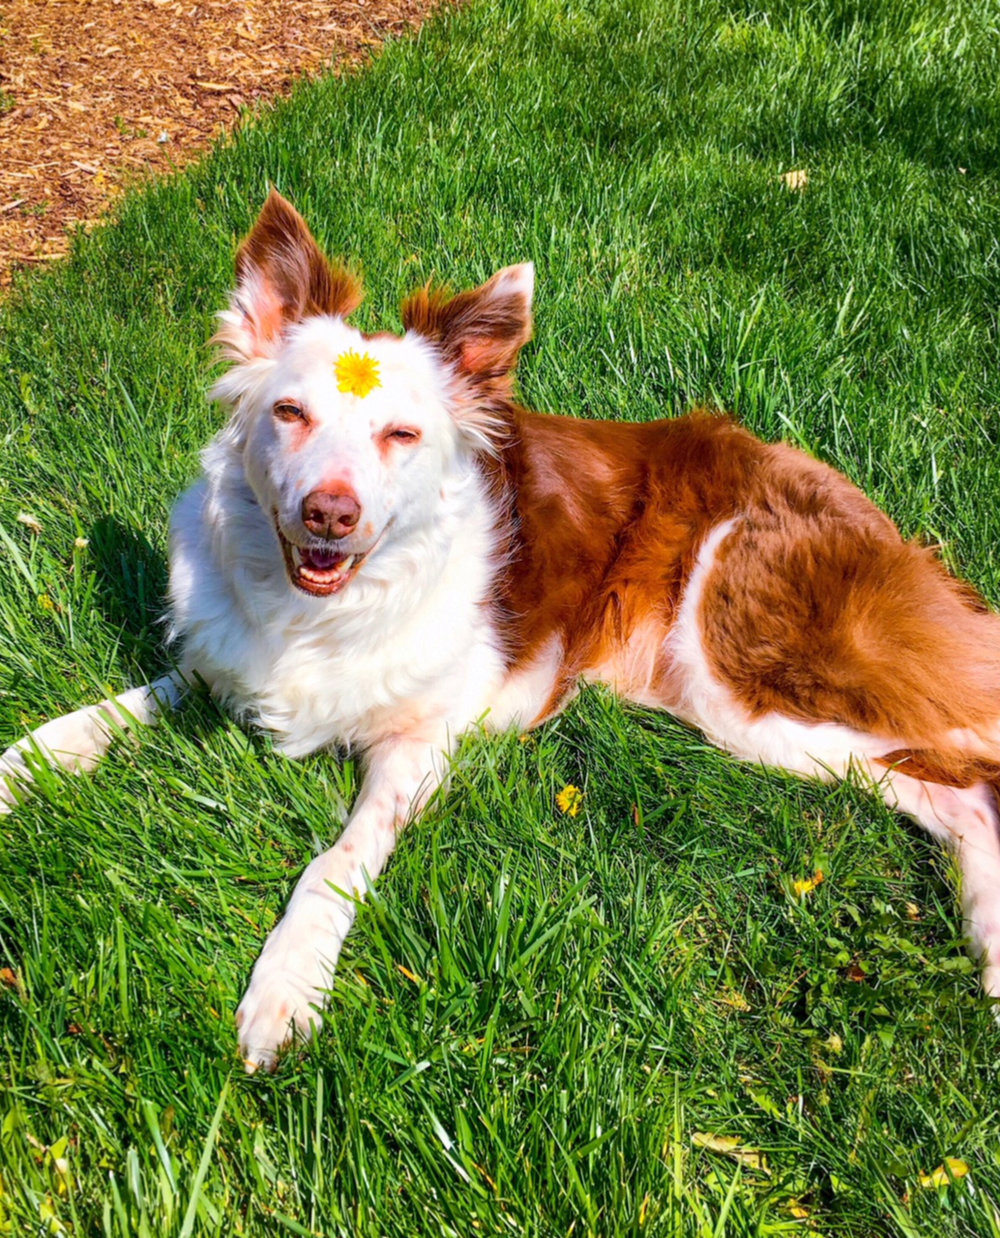 Kaylee    is a seven-year-old Border Collie rescue loves people and has never met a stranger! This calm sweetheart also enjoys walk and car rides.